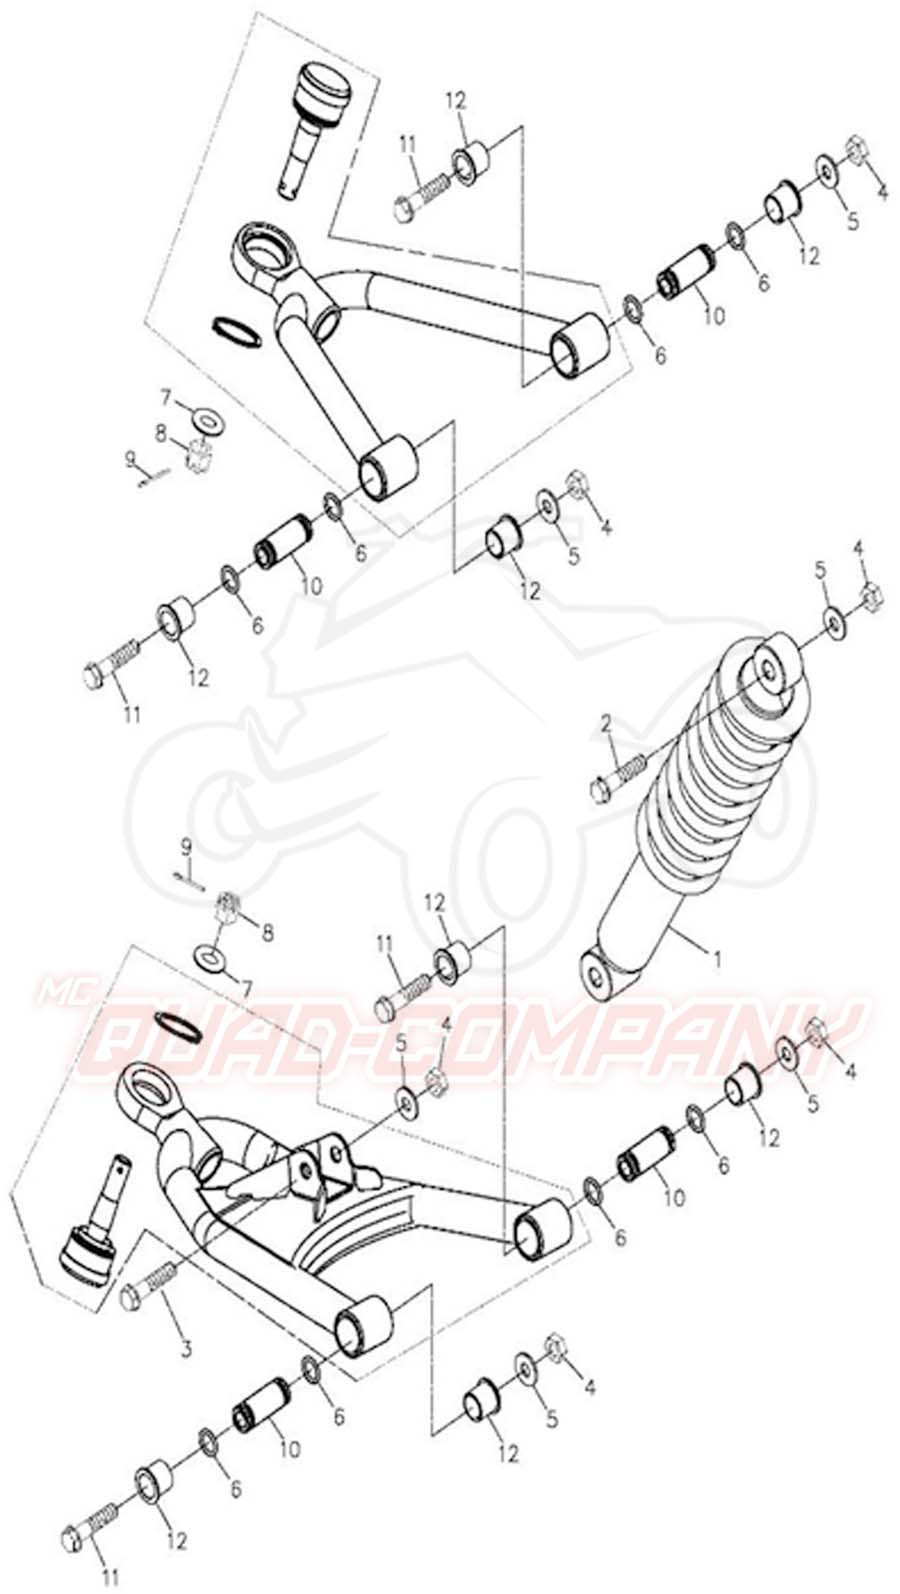 125cc Scooter Wiring Diagram as well Wiring Diagram For Loncin 110cc Picture also Electric Mobility Wiring Diagram in addition Adly Atv Parts also Adly Atv Parts. on wiring diagram for 49cc quad